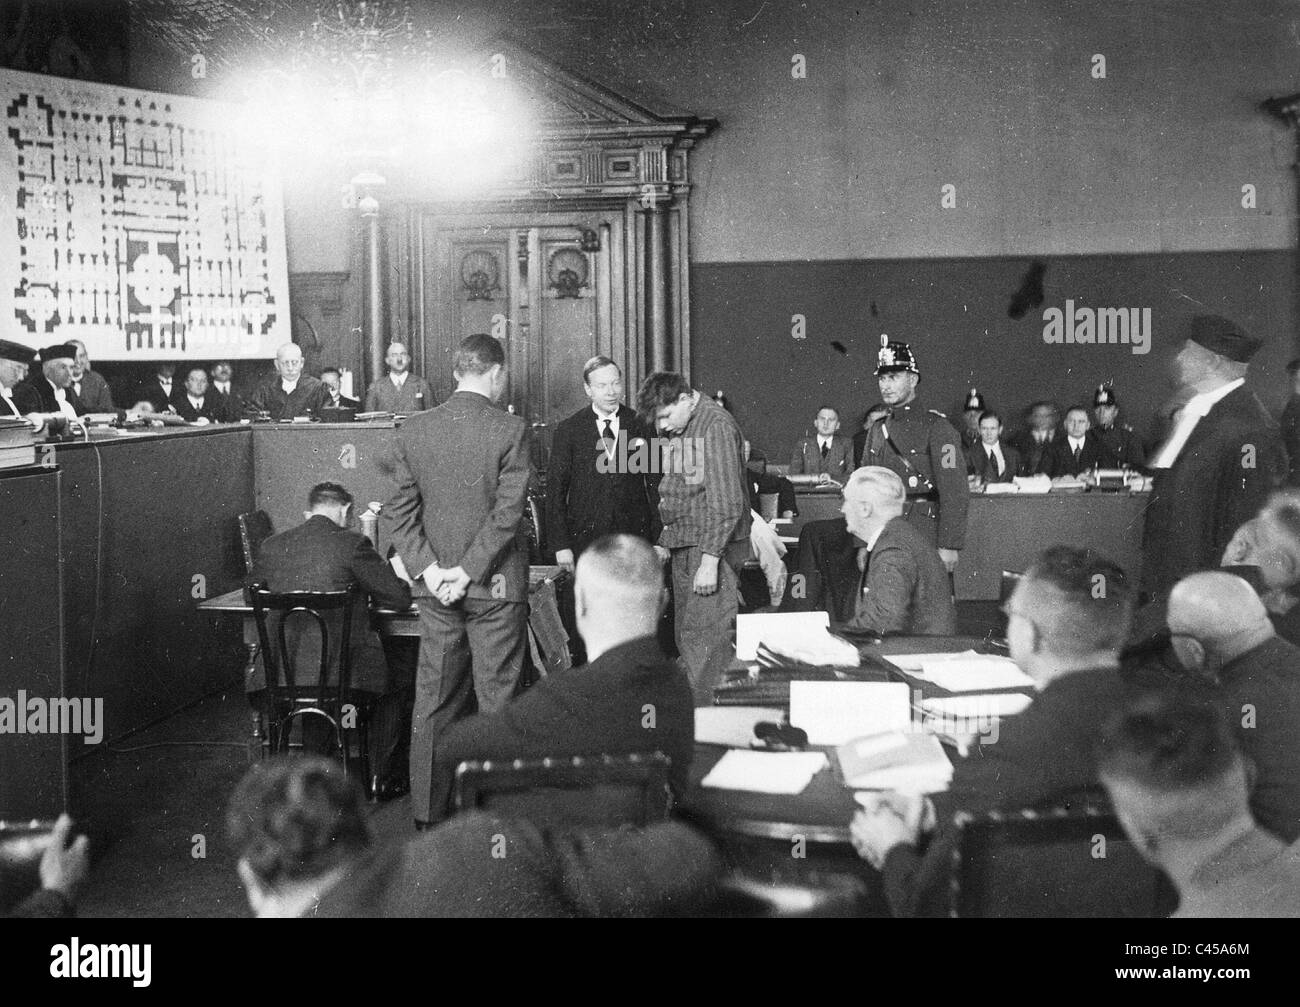 Martinus van der Lubbe in the Reichstag fire trial, 1933 - Stock Image